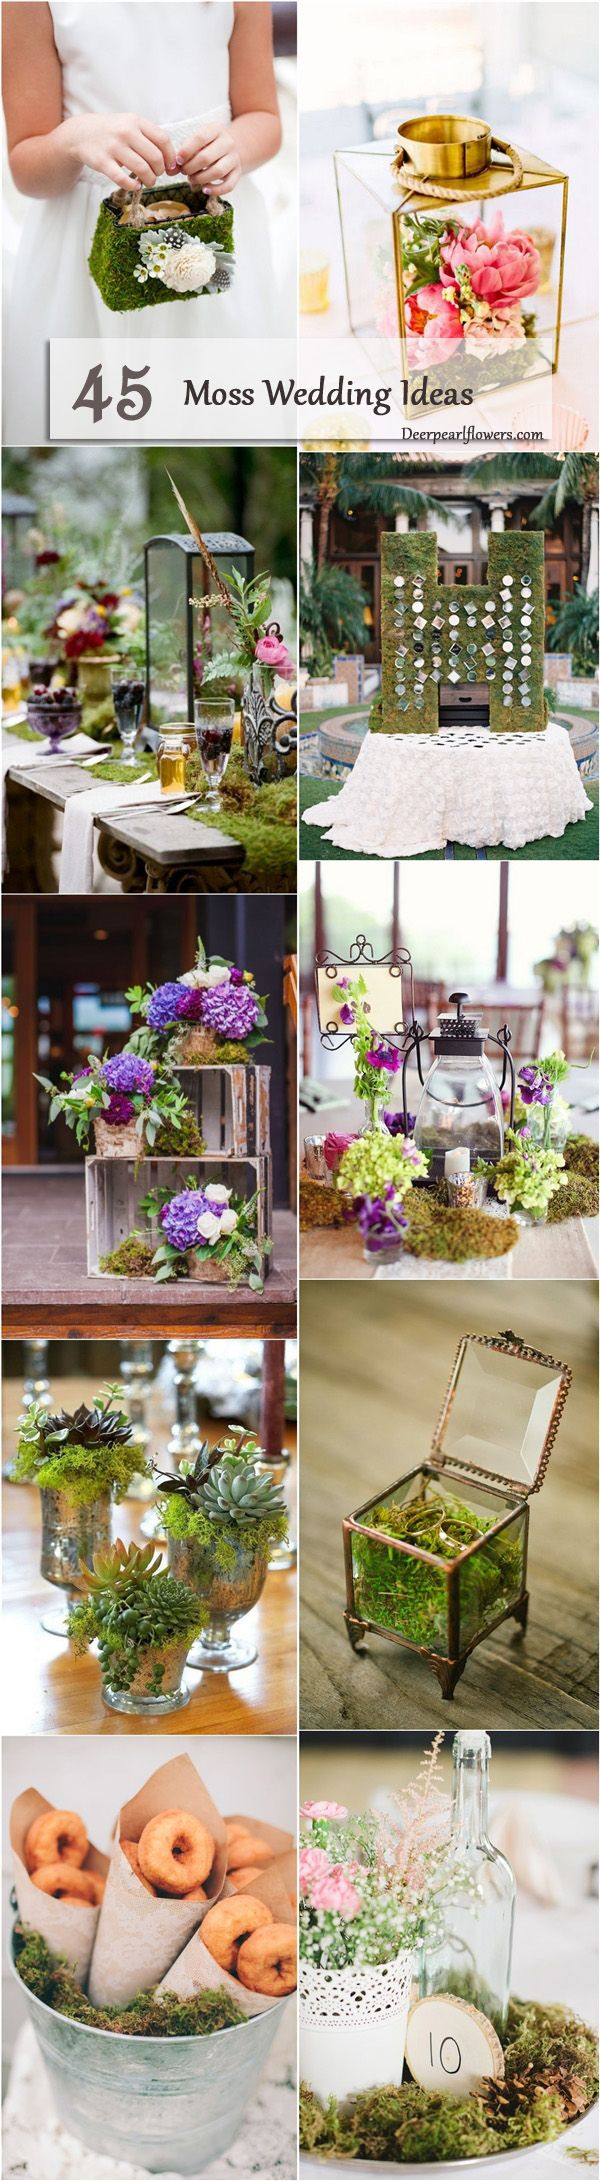 45 Rustic Moss Decor Ideas for A